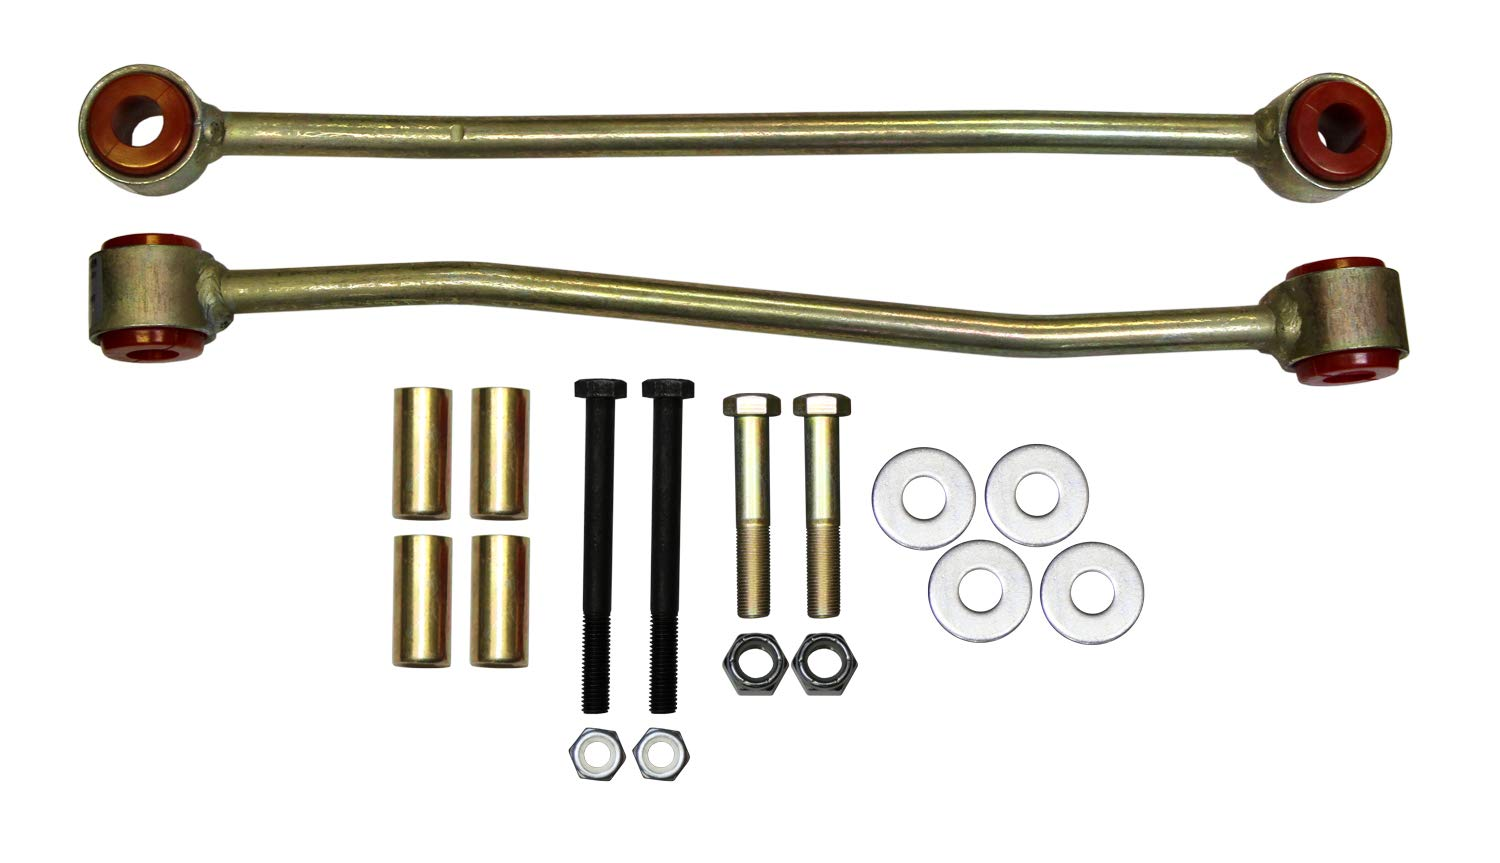 Skyjacker (SBE408) 5''- 8'' Sway Bar Extended End Link by Skyjacker